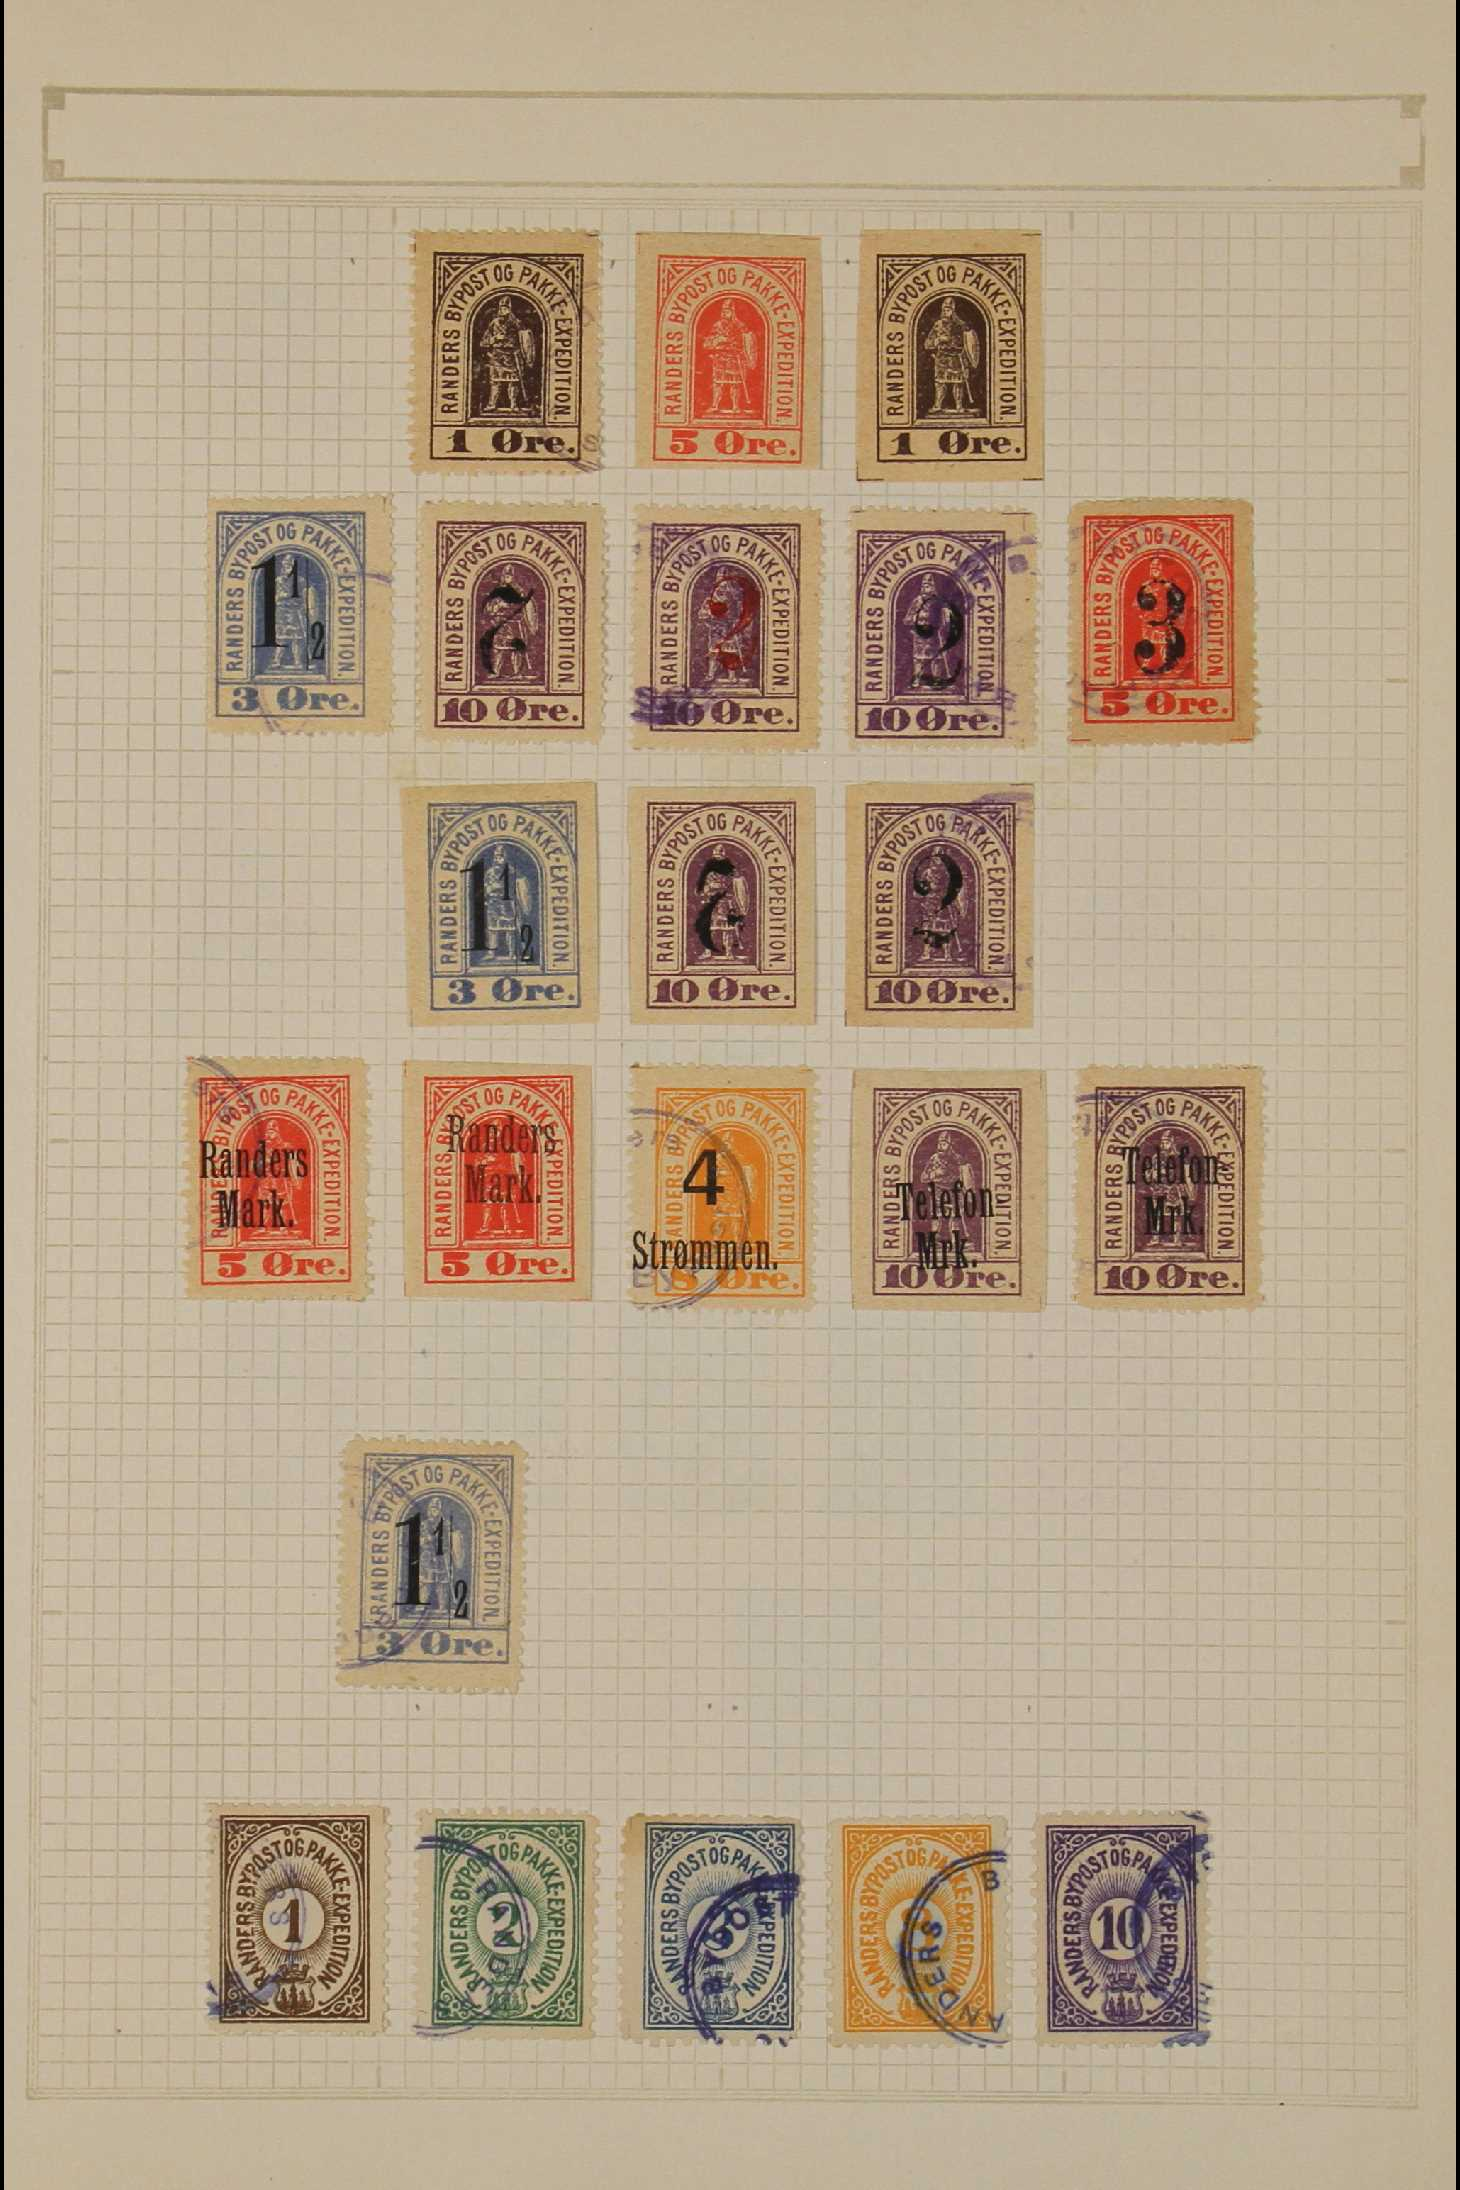 DENMARK LOCAL POST STAMPS - RANDERS 1885-89. MINT & USED ranges incl. inverted surcharges,